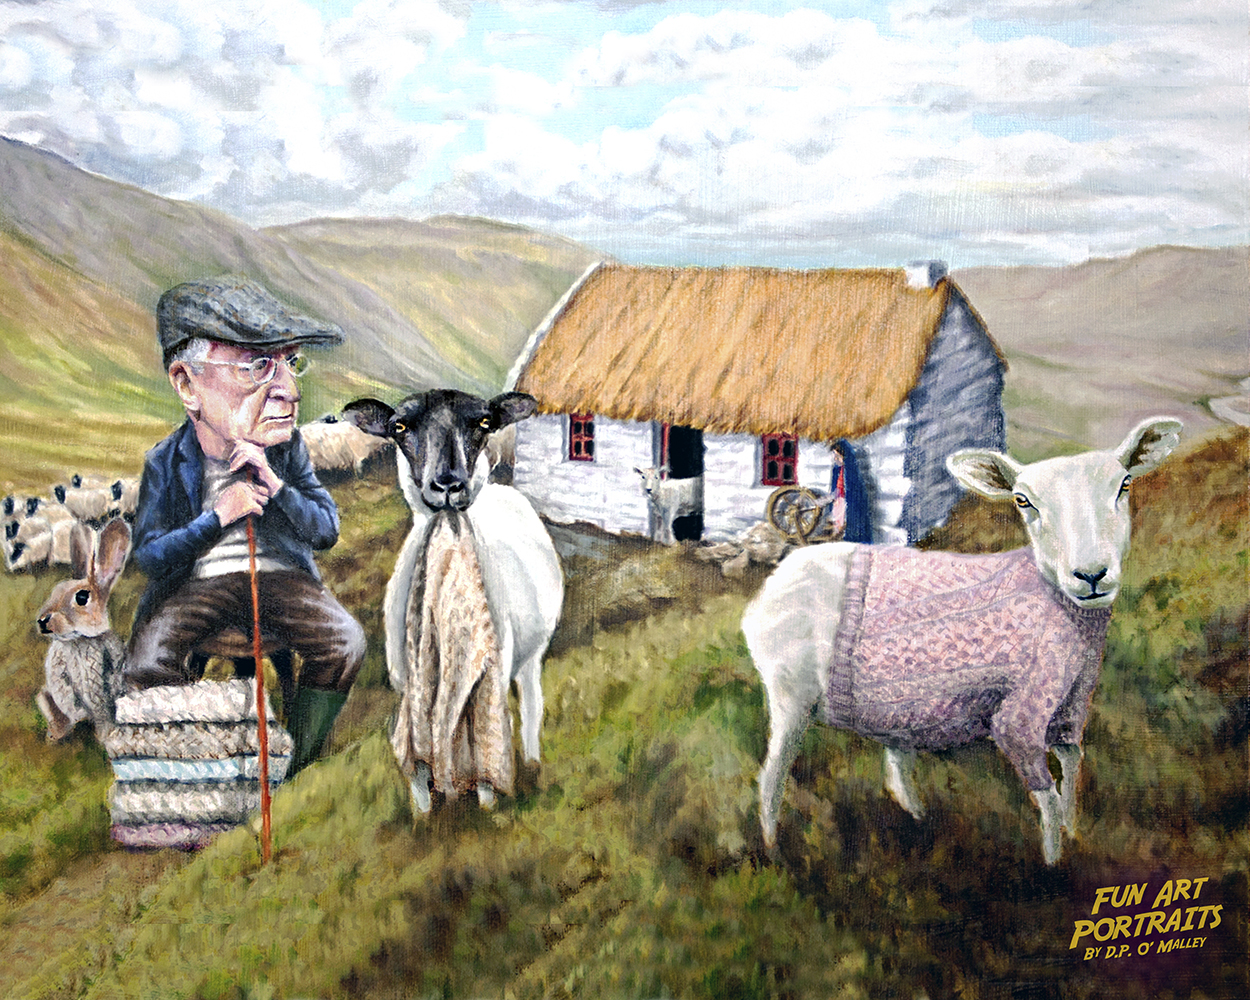 A Farmer seated in front of a cottagesells a woolly jumper sweater to a sheep after it has been sheared